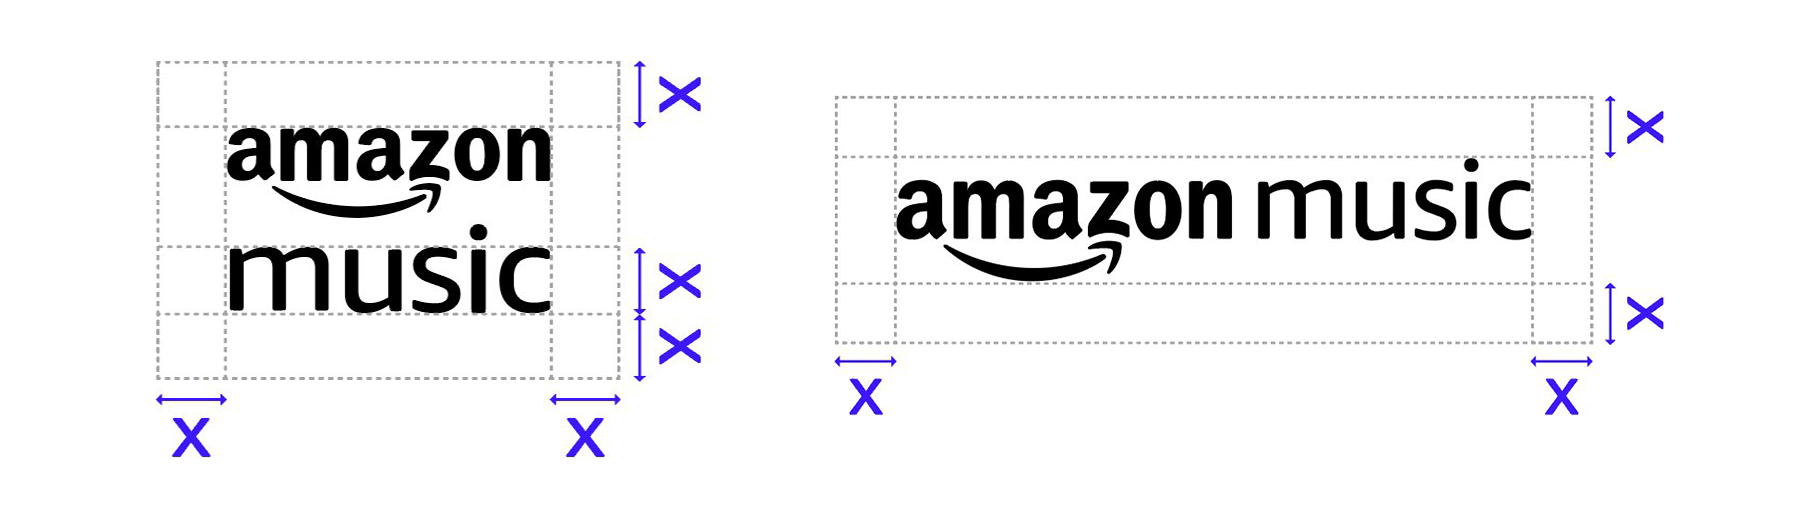 Amazon Music Clear Space.png